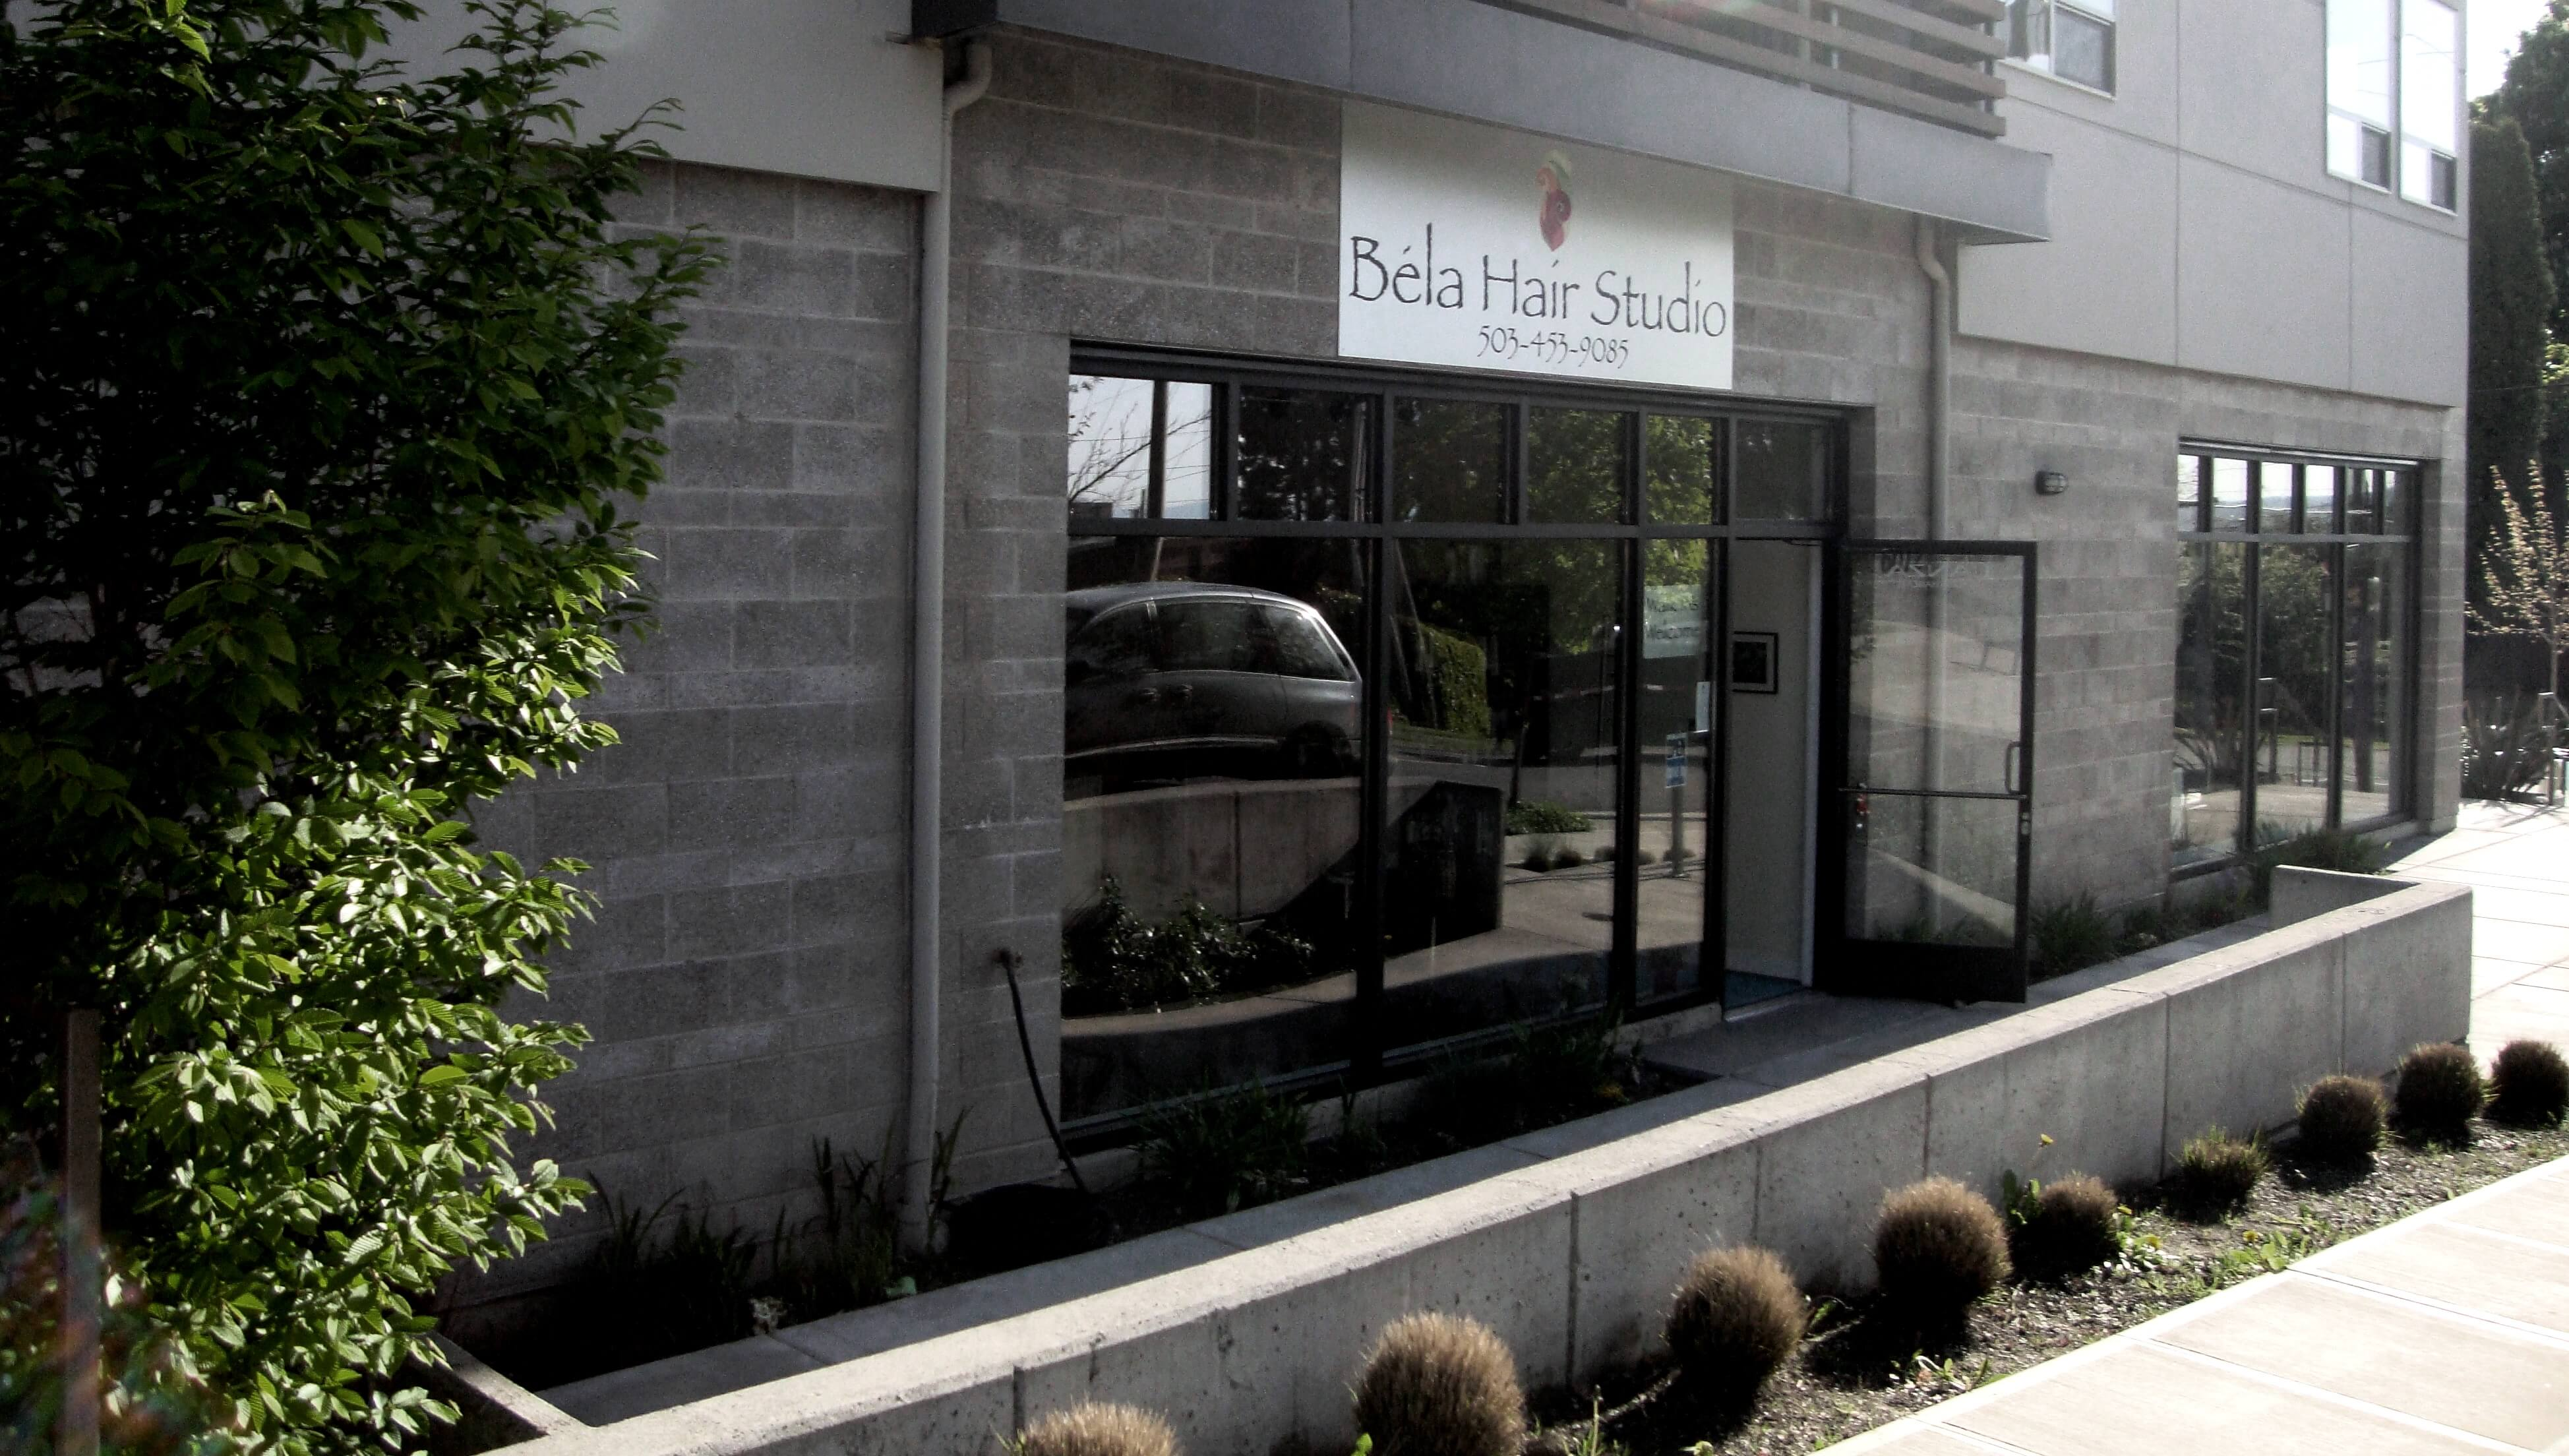 Bela Hair Studio Building